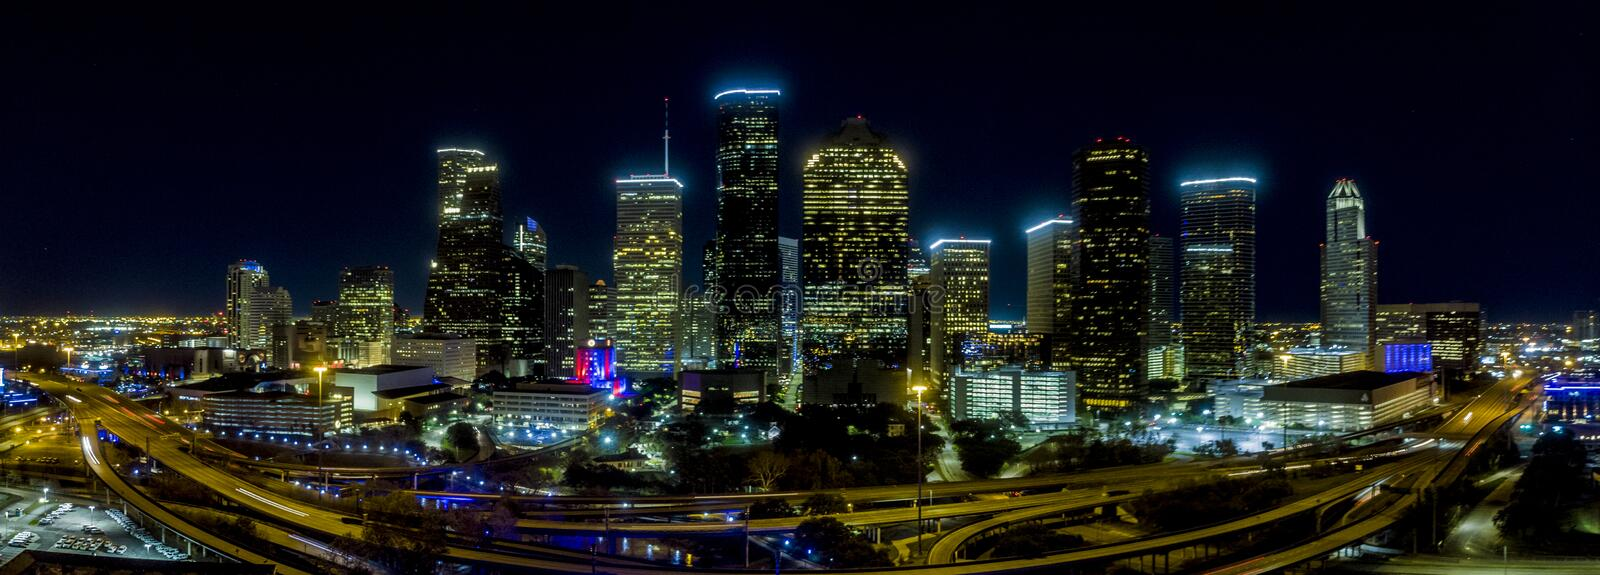 Houston, Texas January tweede, 2019 Houston de stad in bij nachtpanorama stock foto